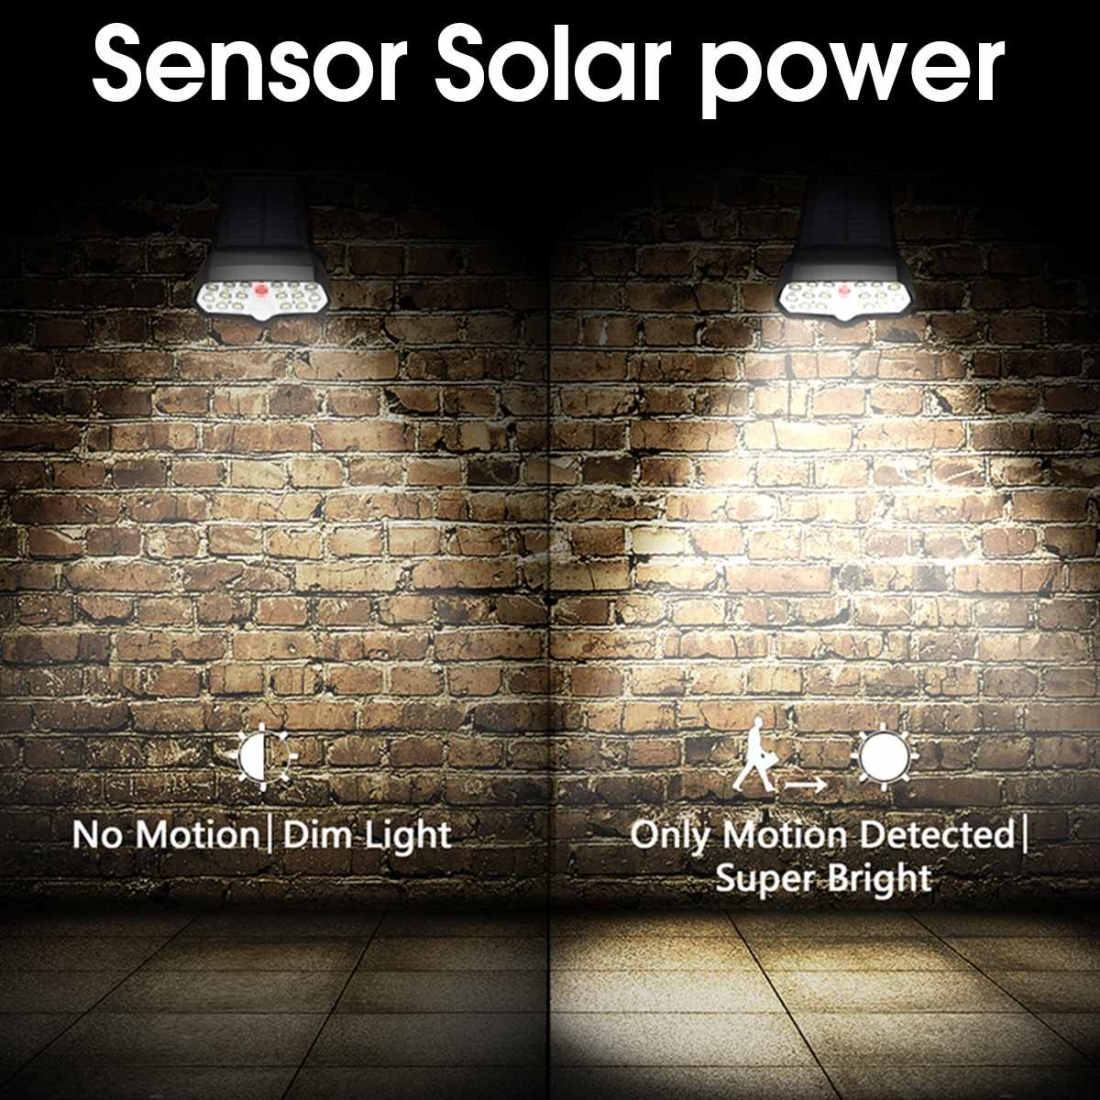 16 LEDs Bulb Dimmable Solar Powered Wall Lamp Outdoor IP65 Waterproof Garden Security Night Light